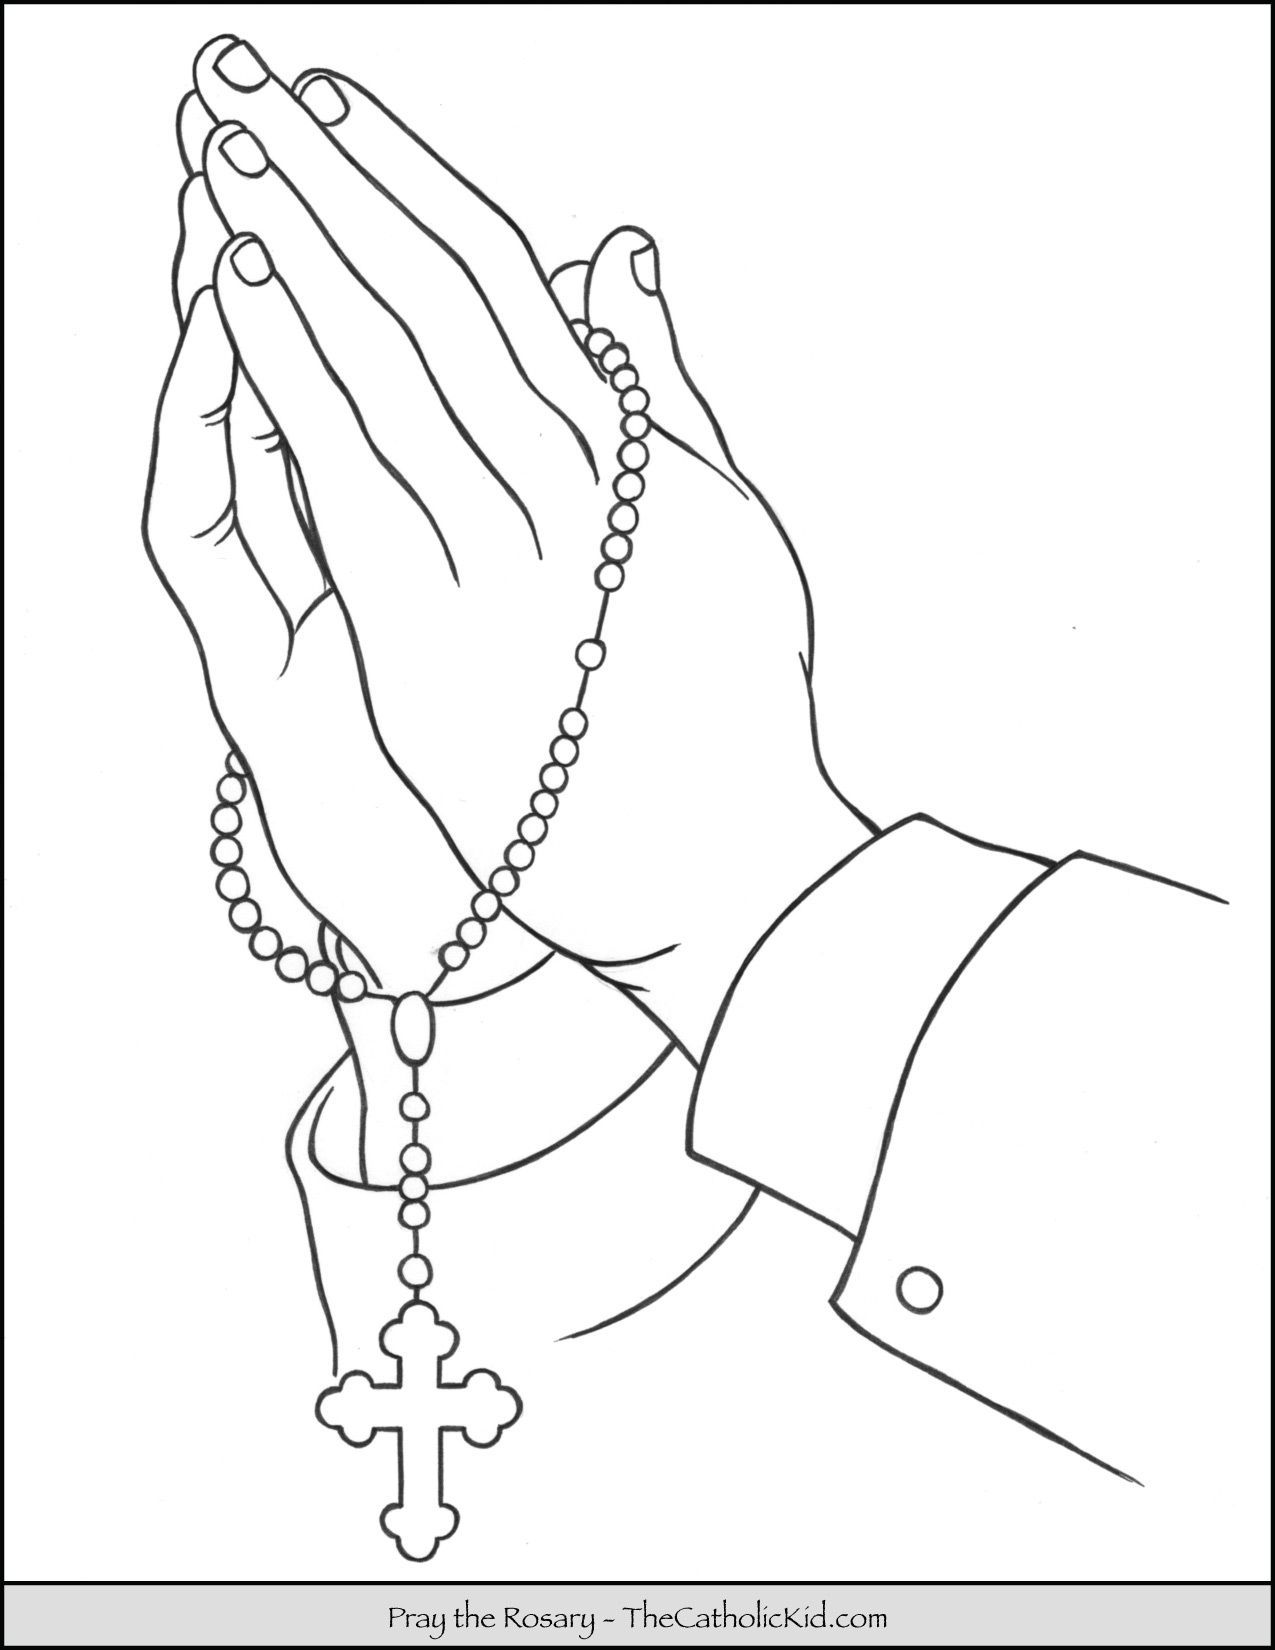 Rosary Hands Praying Coloring Page Thecatholickid Com